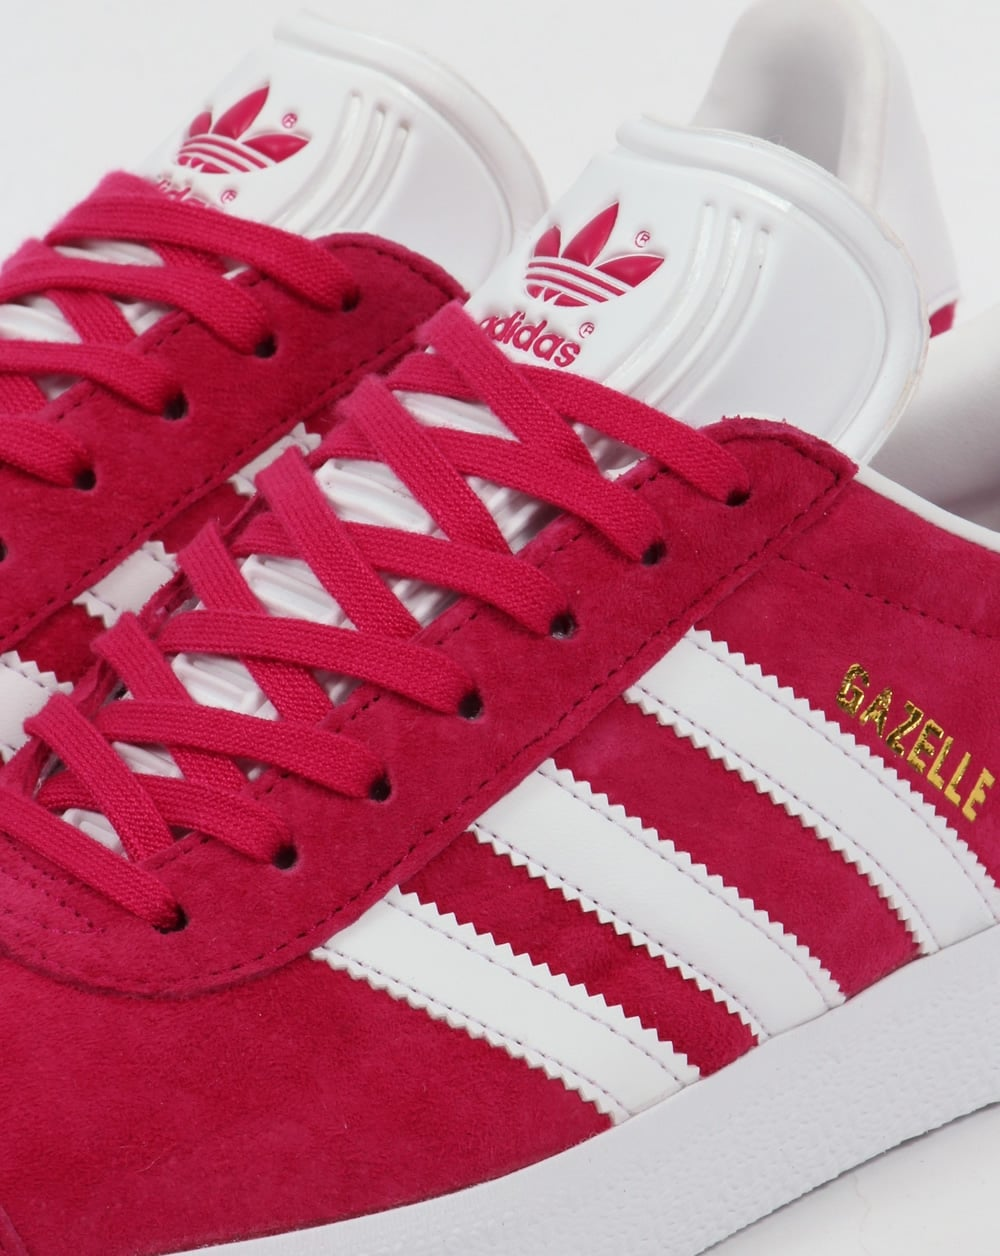 adidas gazelle 2 red suede light pink adidas shoes